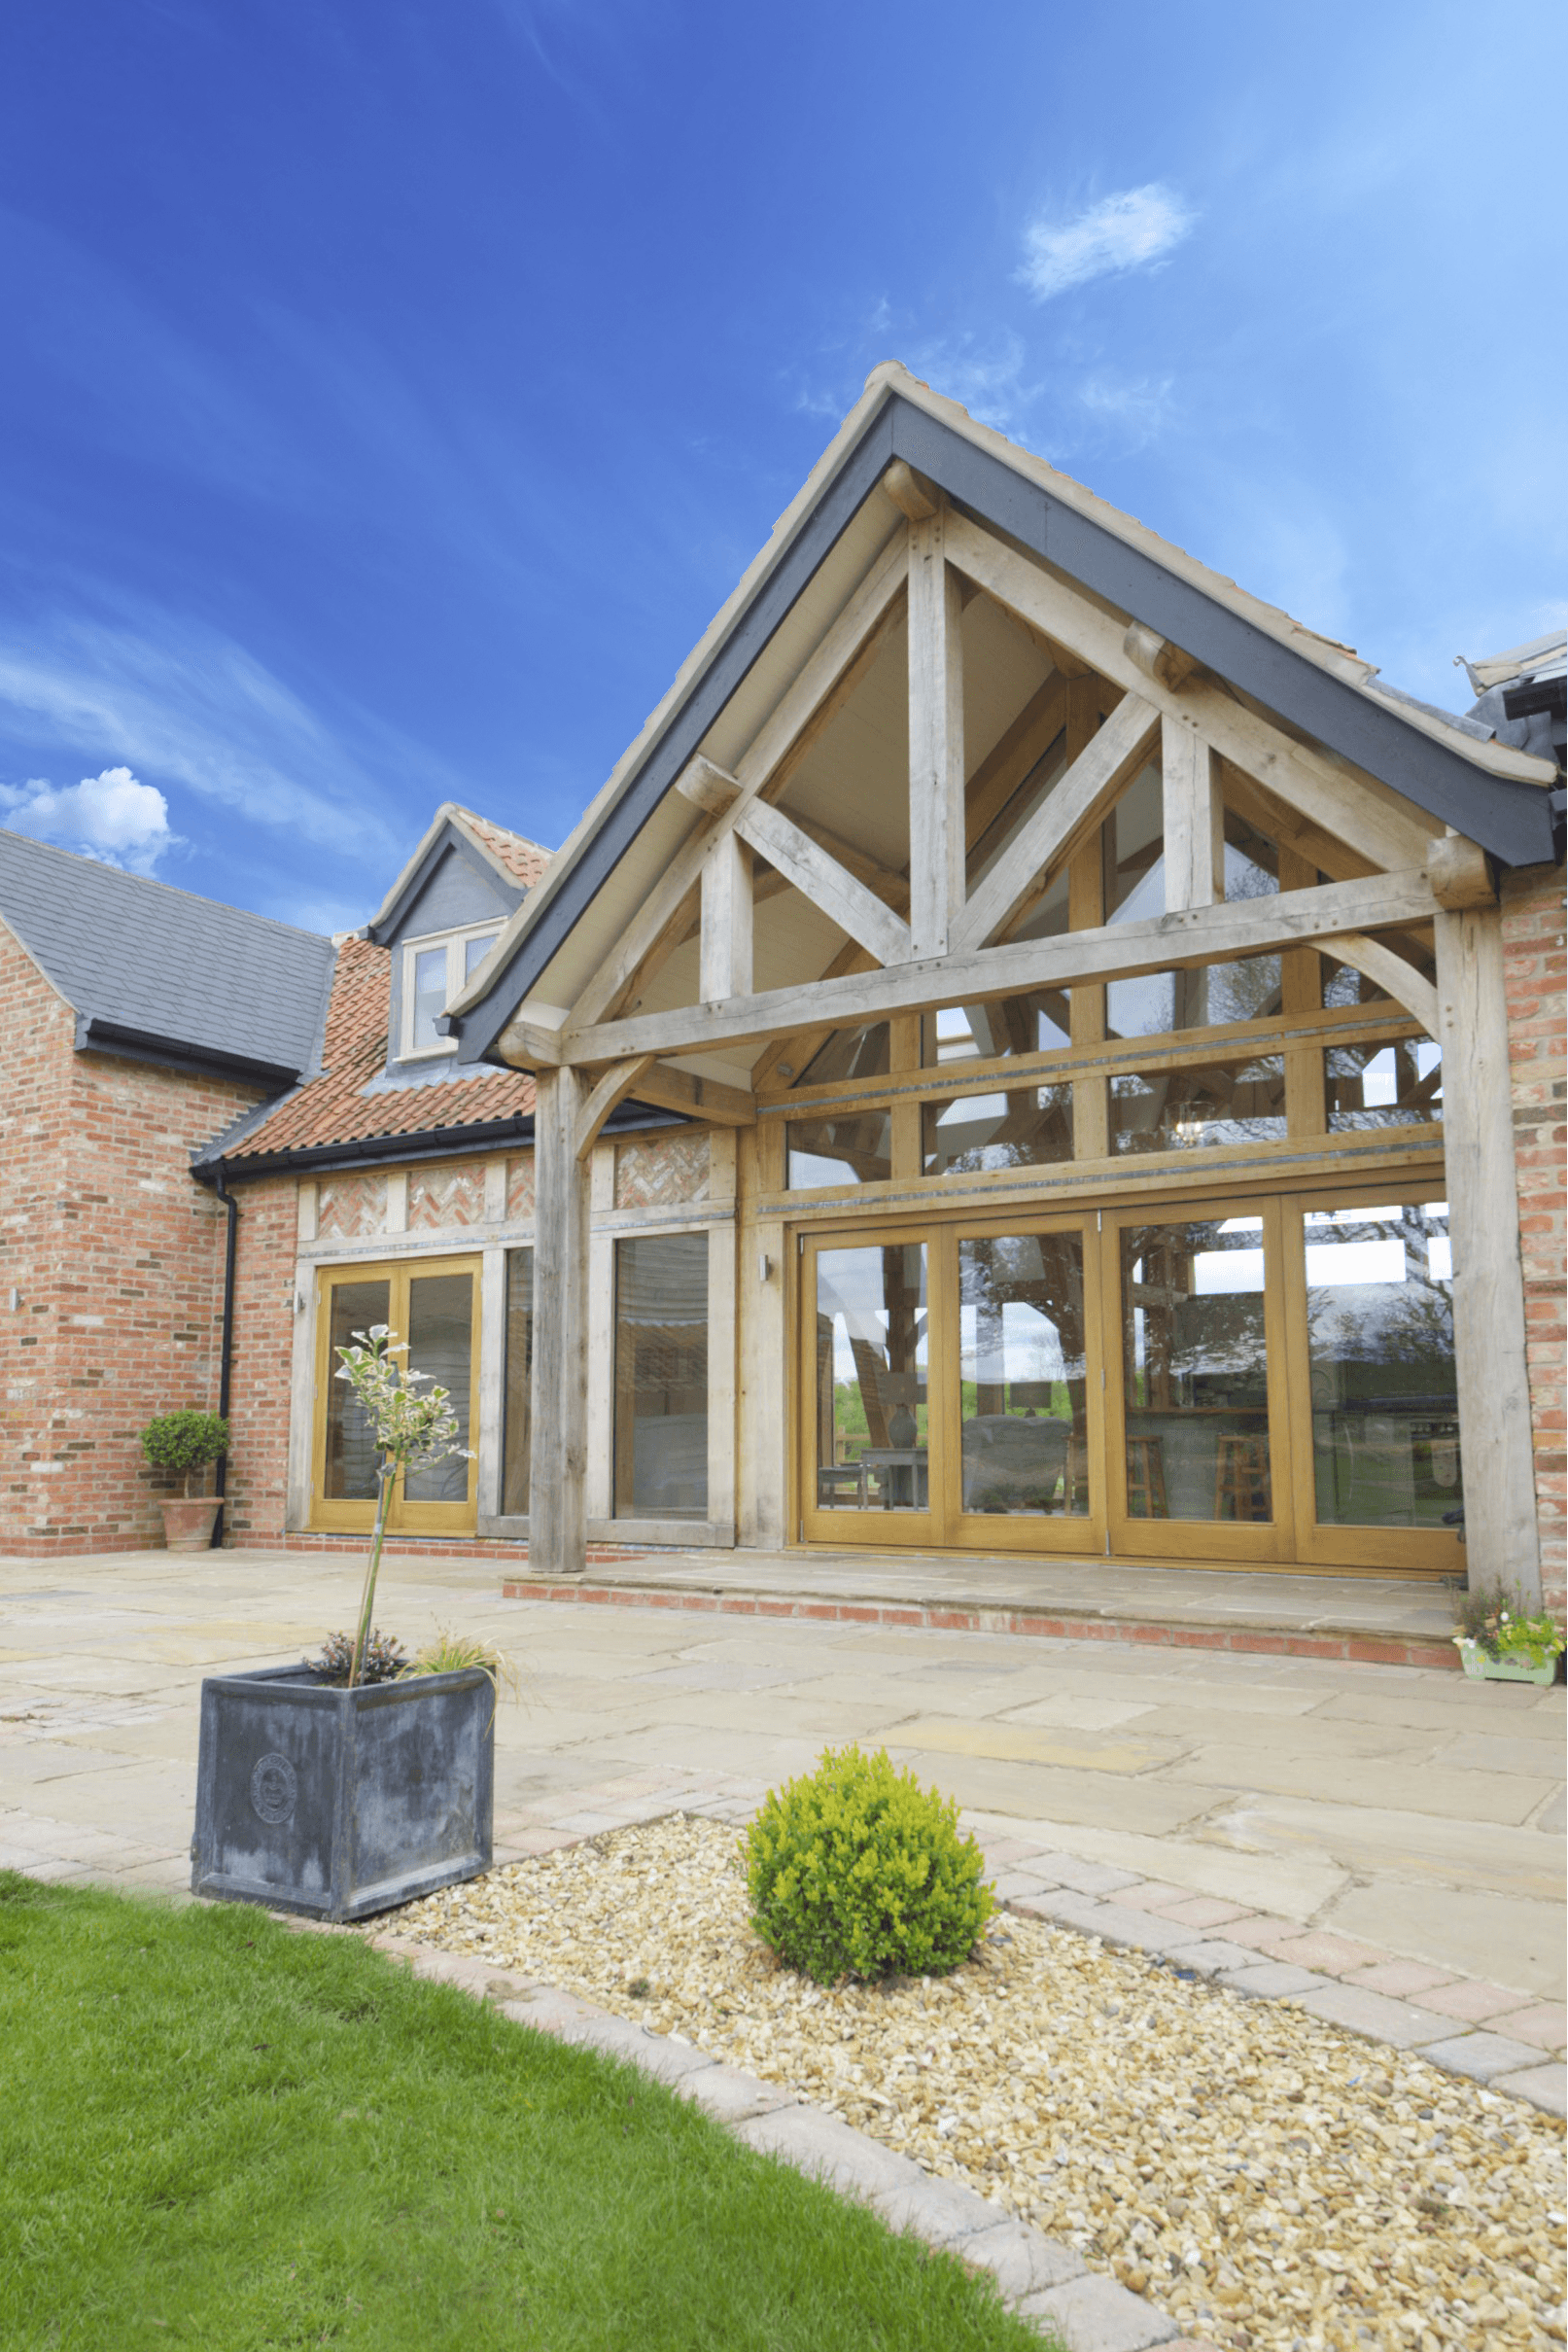 Georgian Farmhouse Design Oak Framed Kitchen Dining And Garden Room Extension To